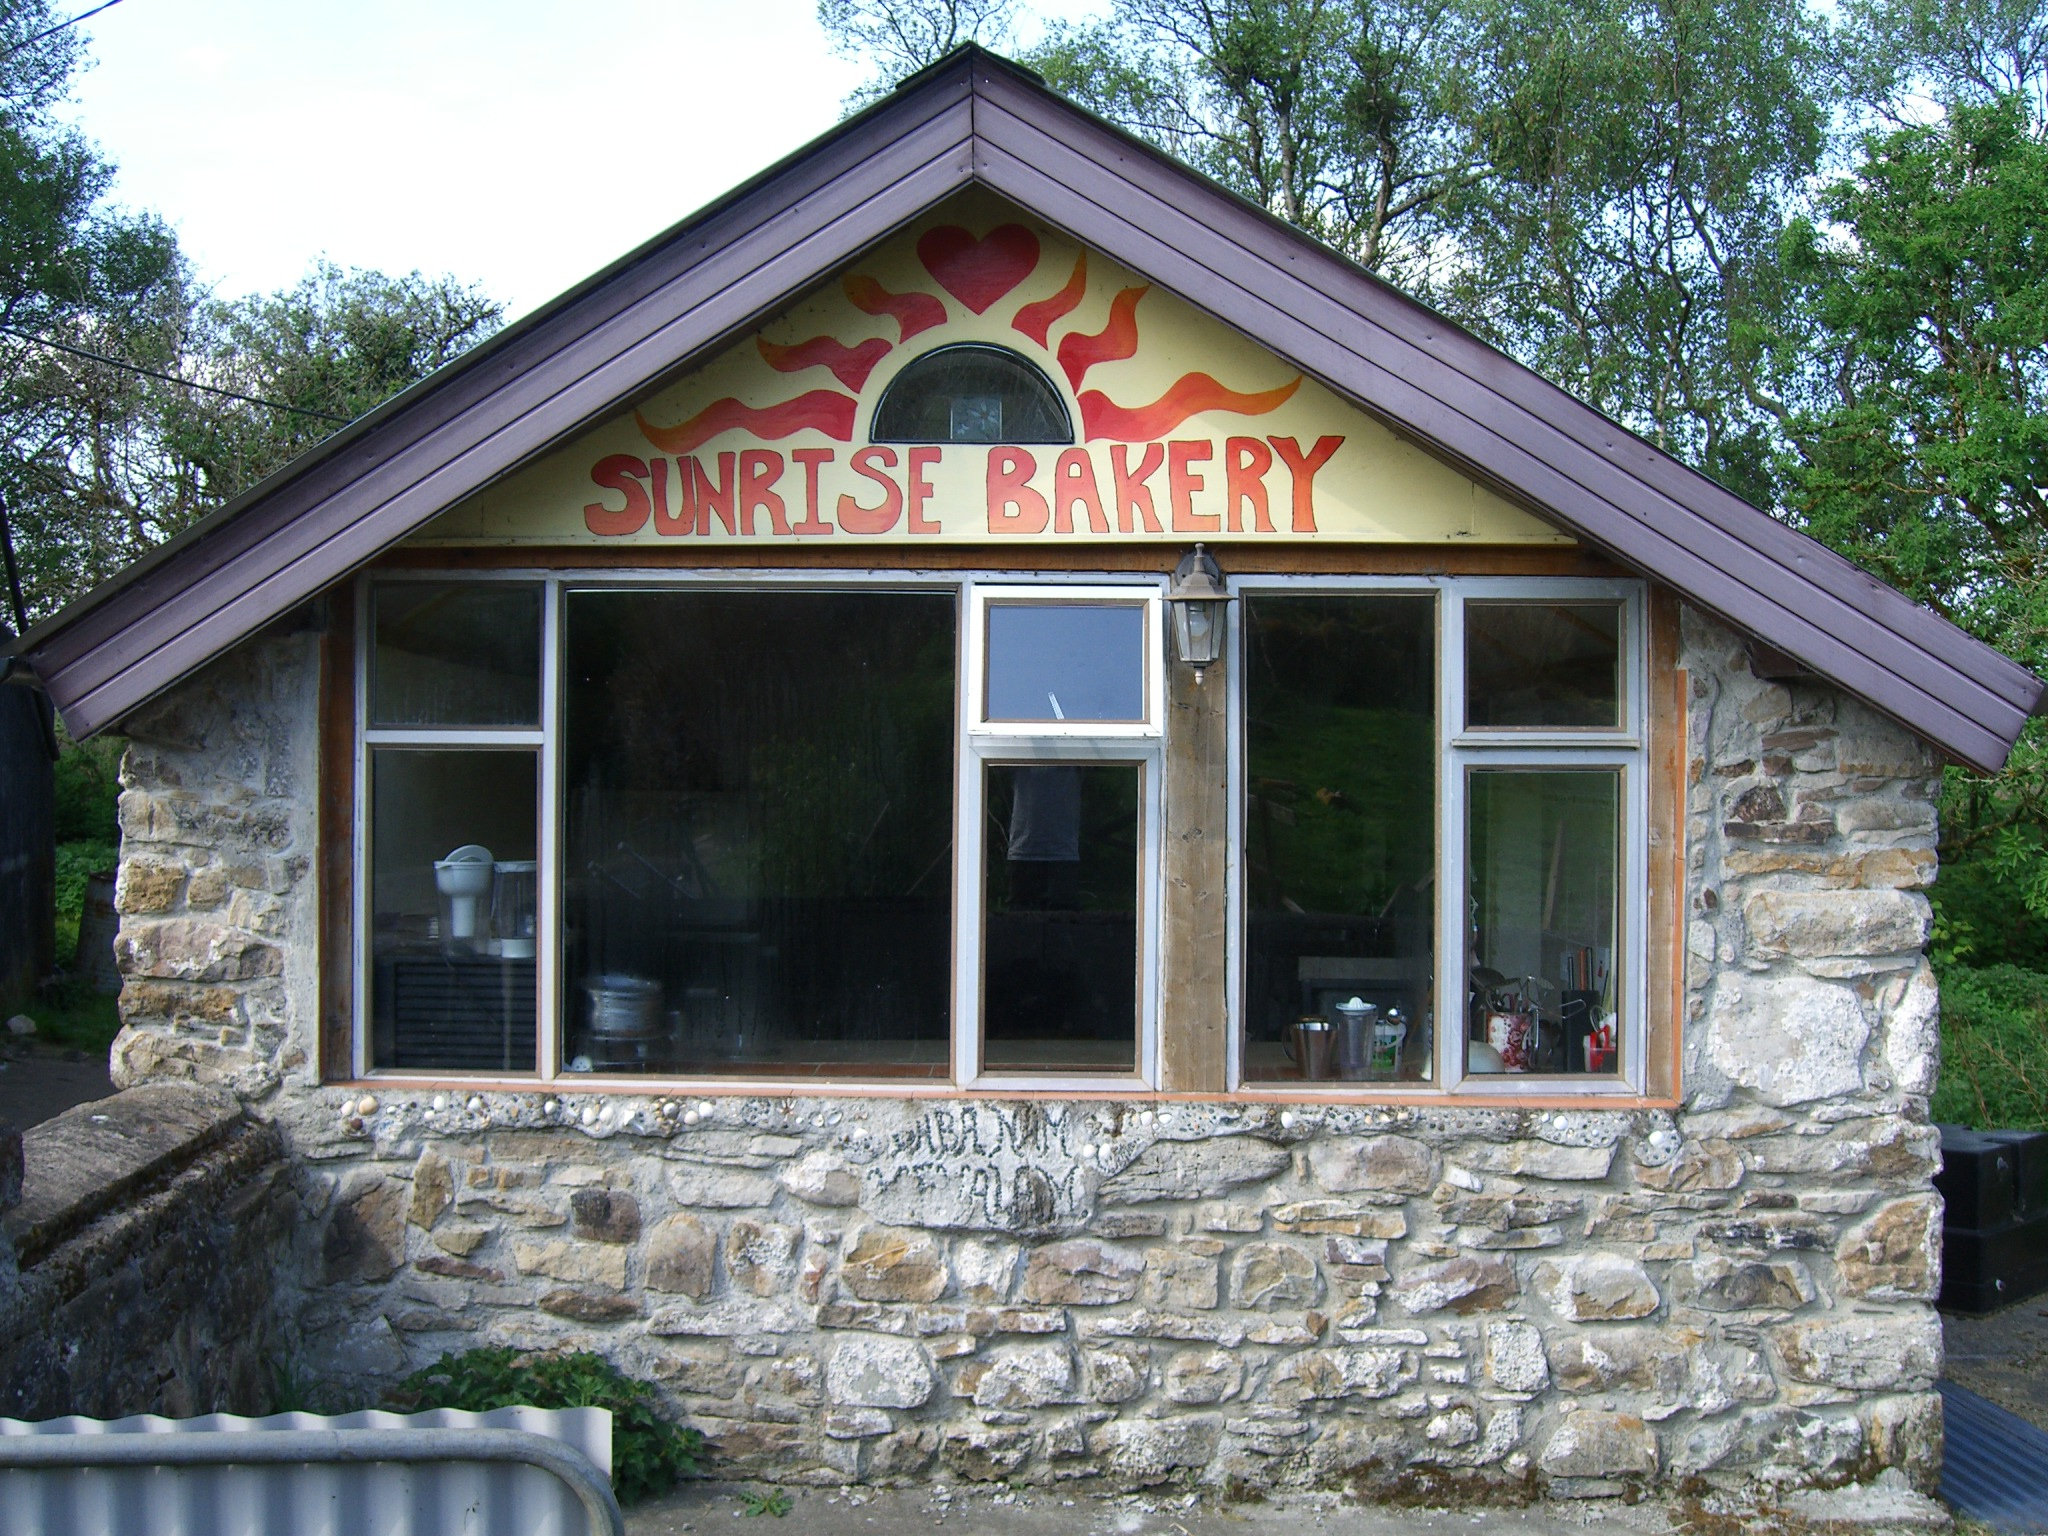 bakery (renovated dilapidated stone horse shed)